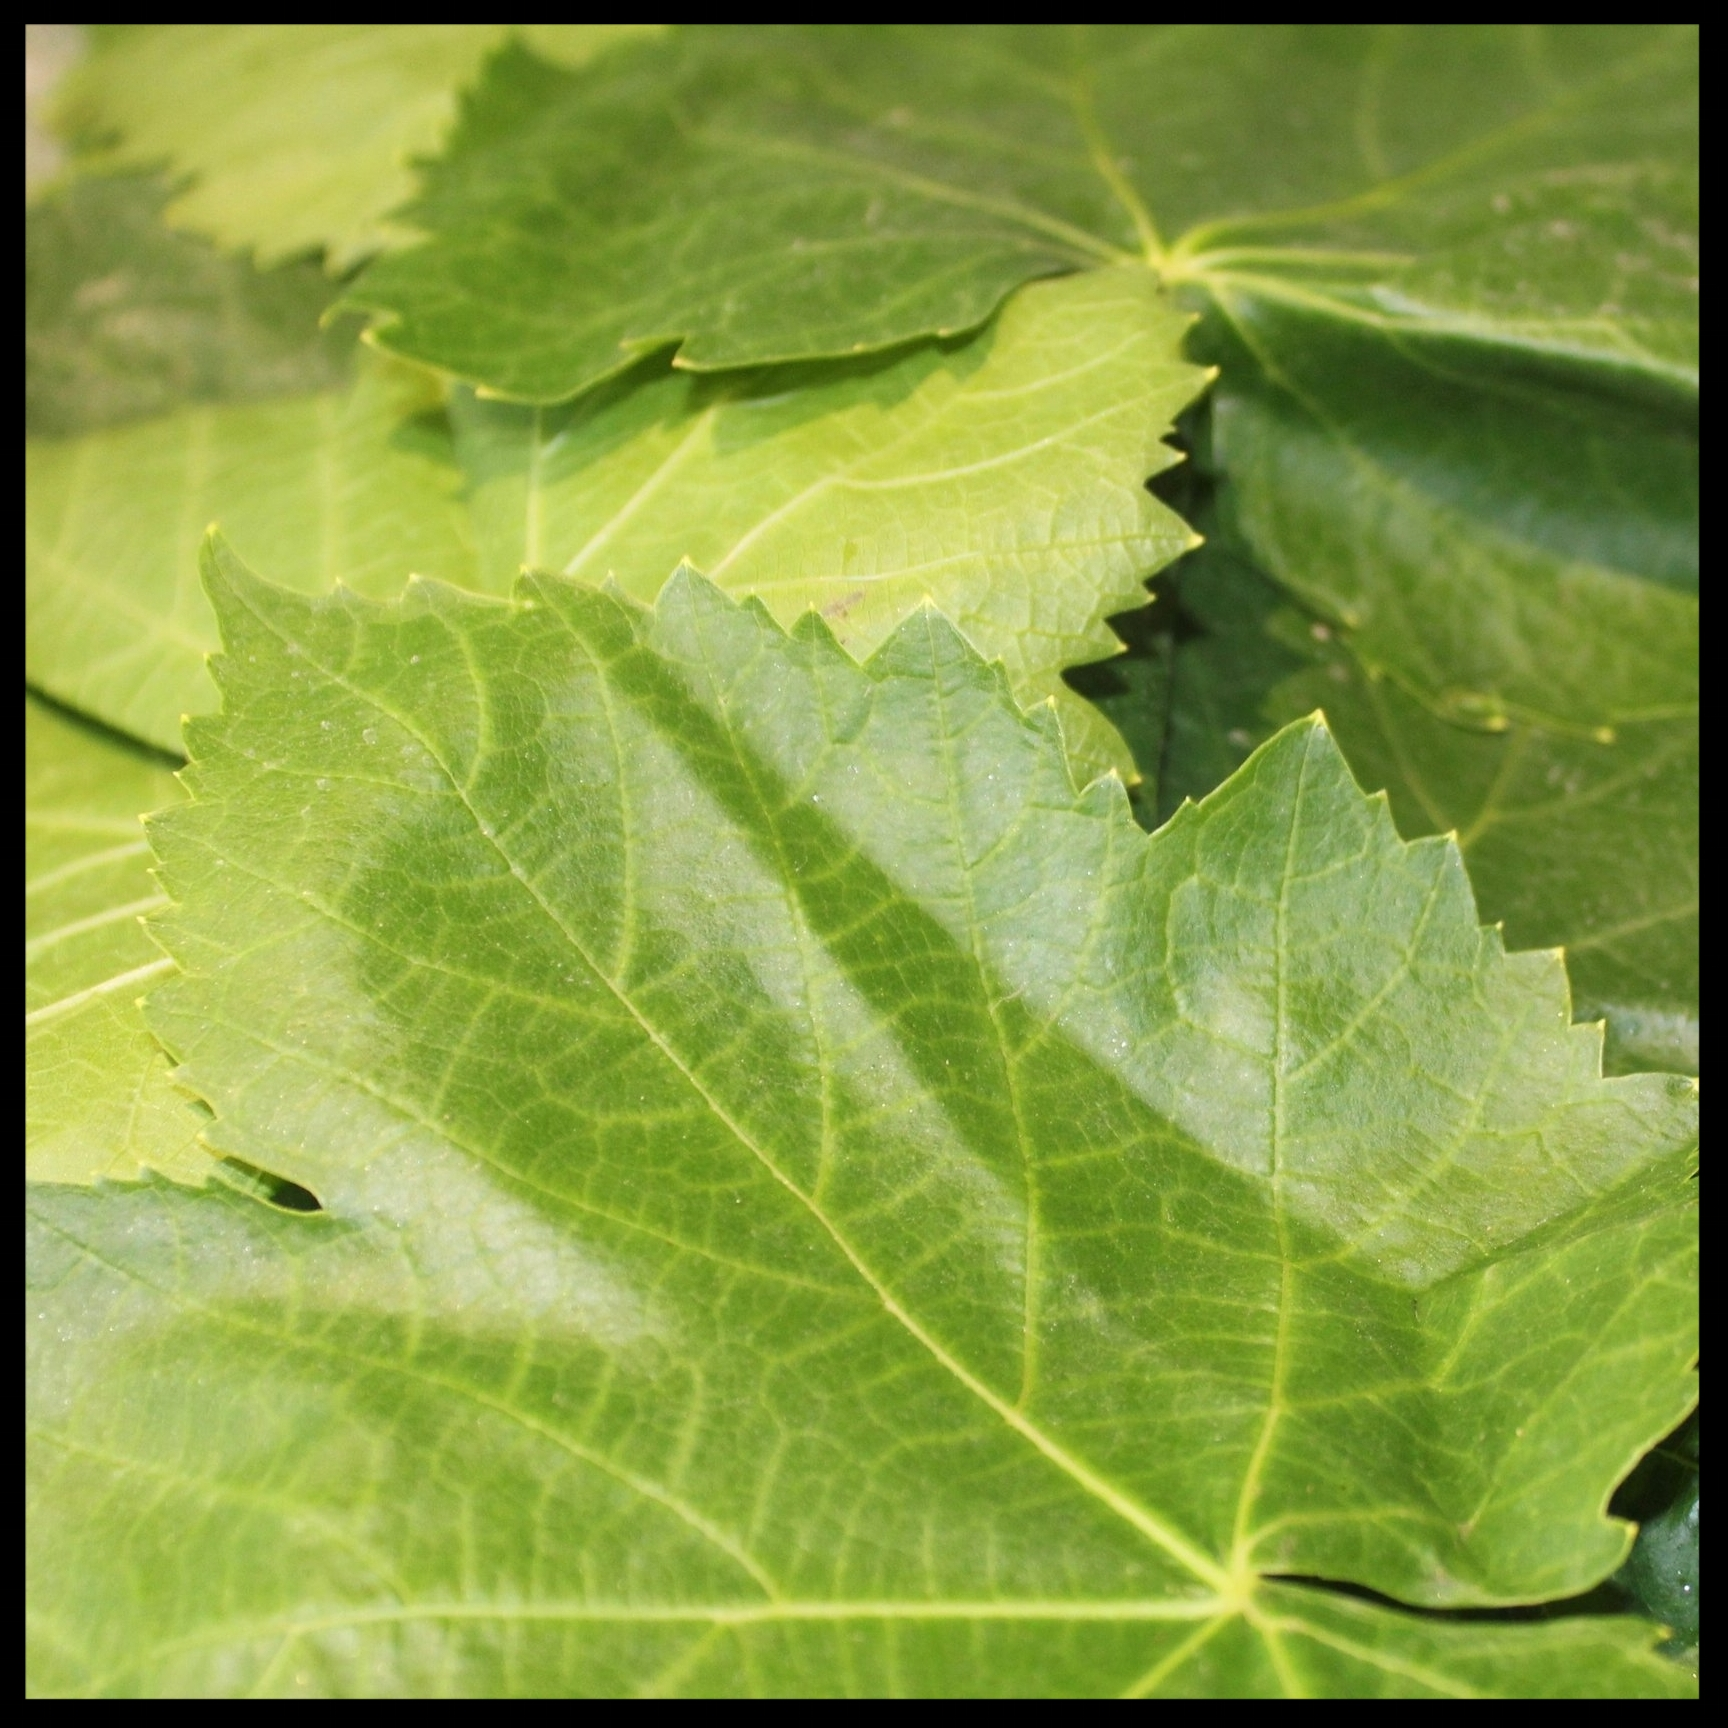 FIRST, A FEW WORDS ABOUT GRAPE LEAVES   For this recipe, I used fresh grape leaves, but you can use jarred leaves as well. To prepare them, rinse well in a colander and set out to dry on paper or cloth towels, being careful to separate them without tearing.